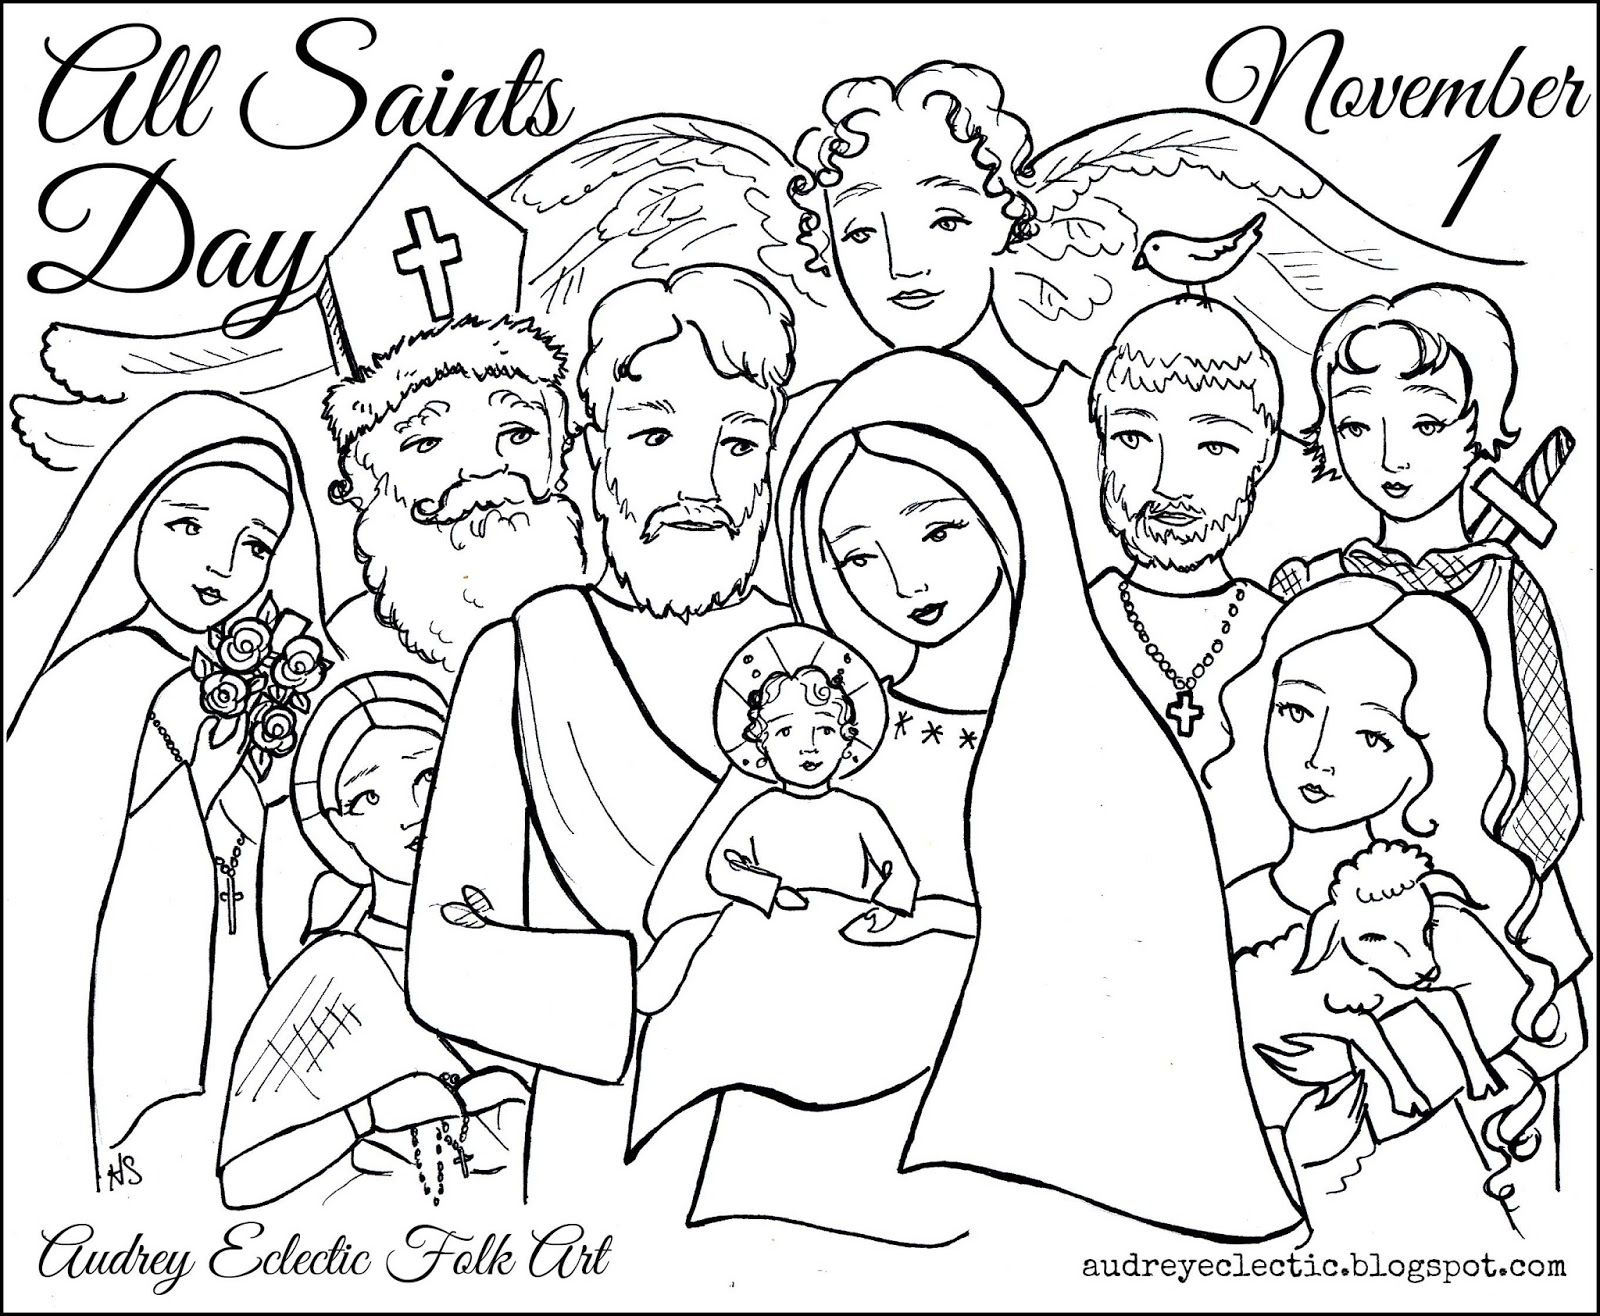 All Saints Day Festivities All Saints Day Saint Coloring Sunday School Coloring Pages